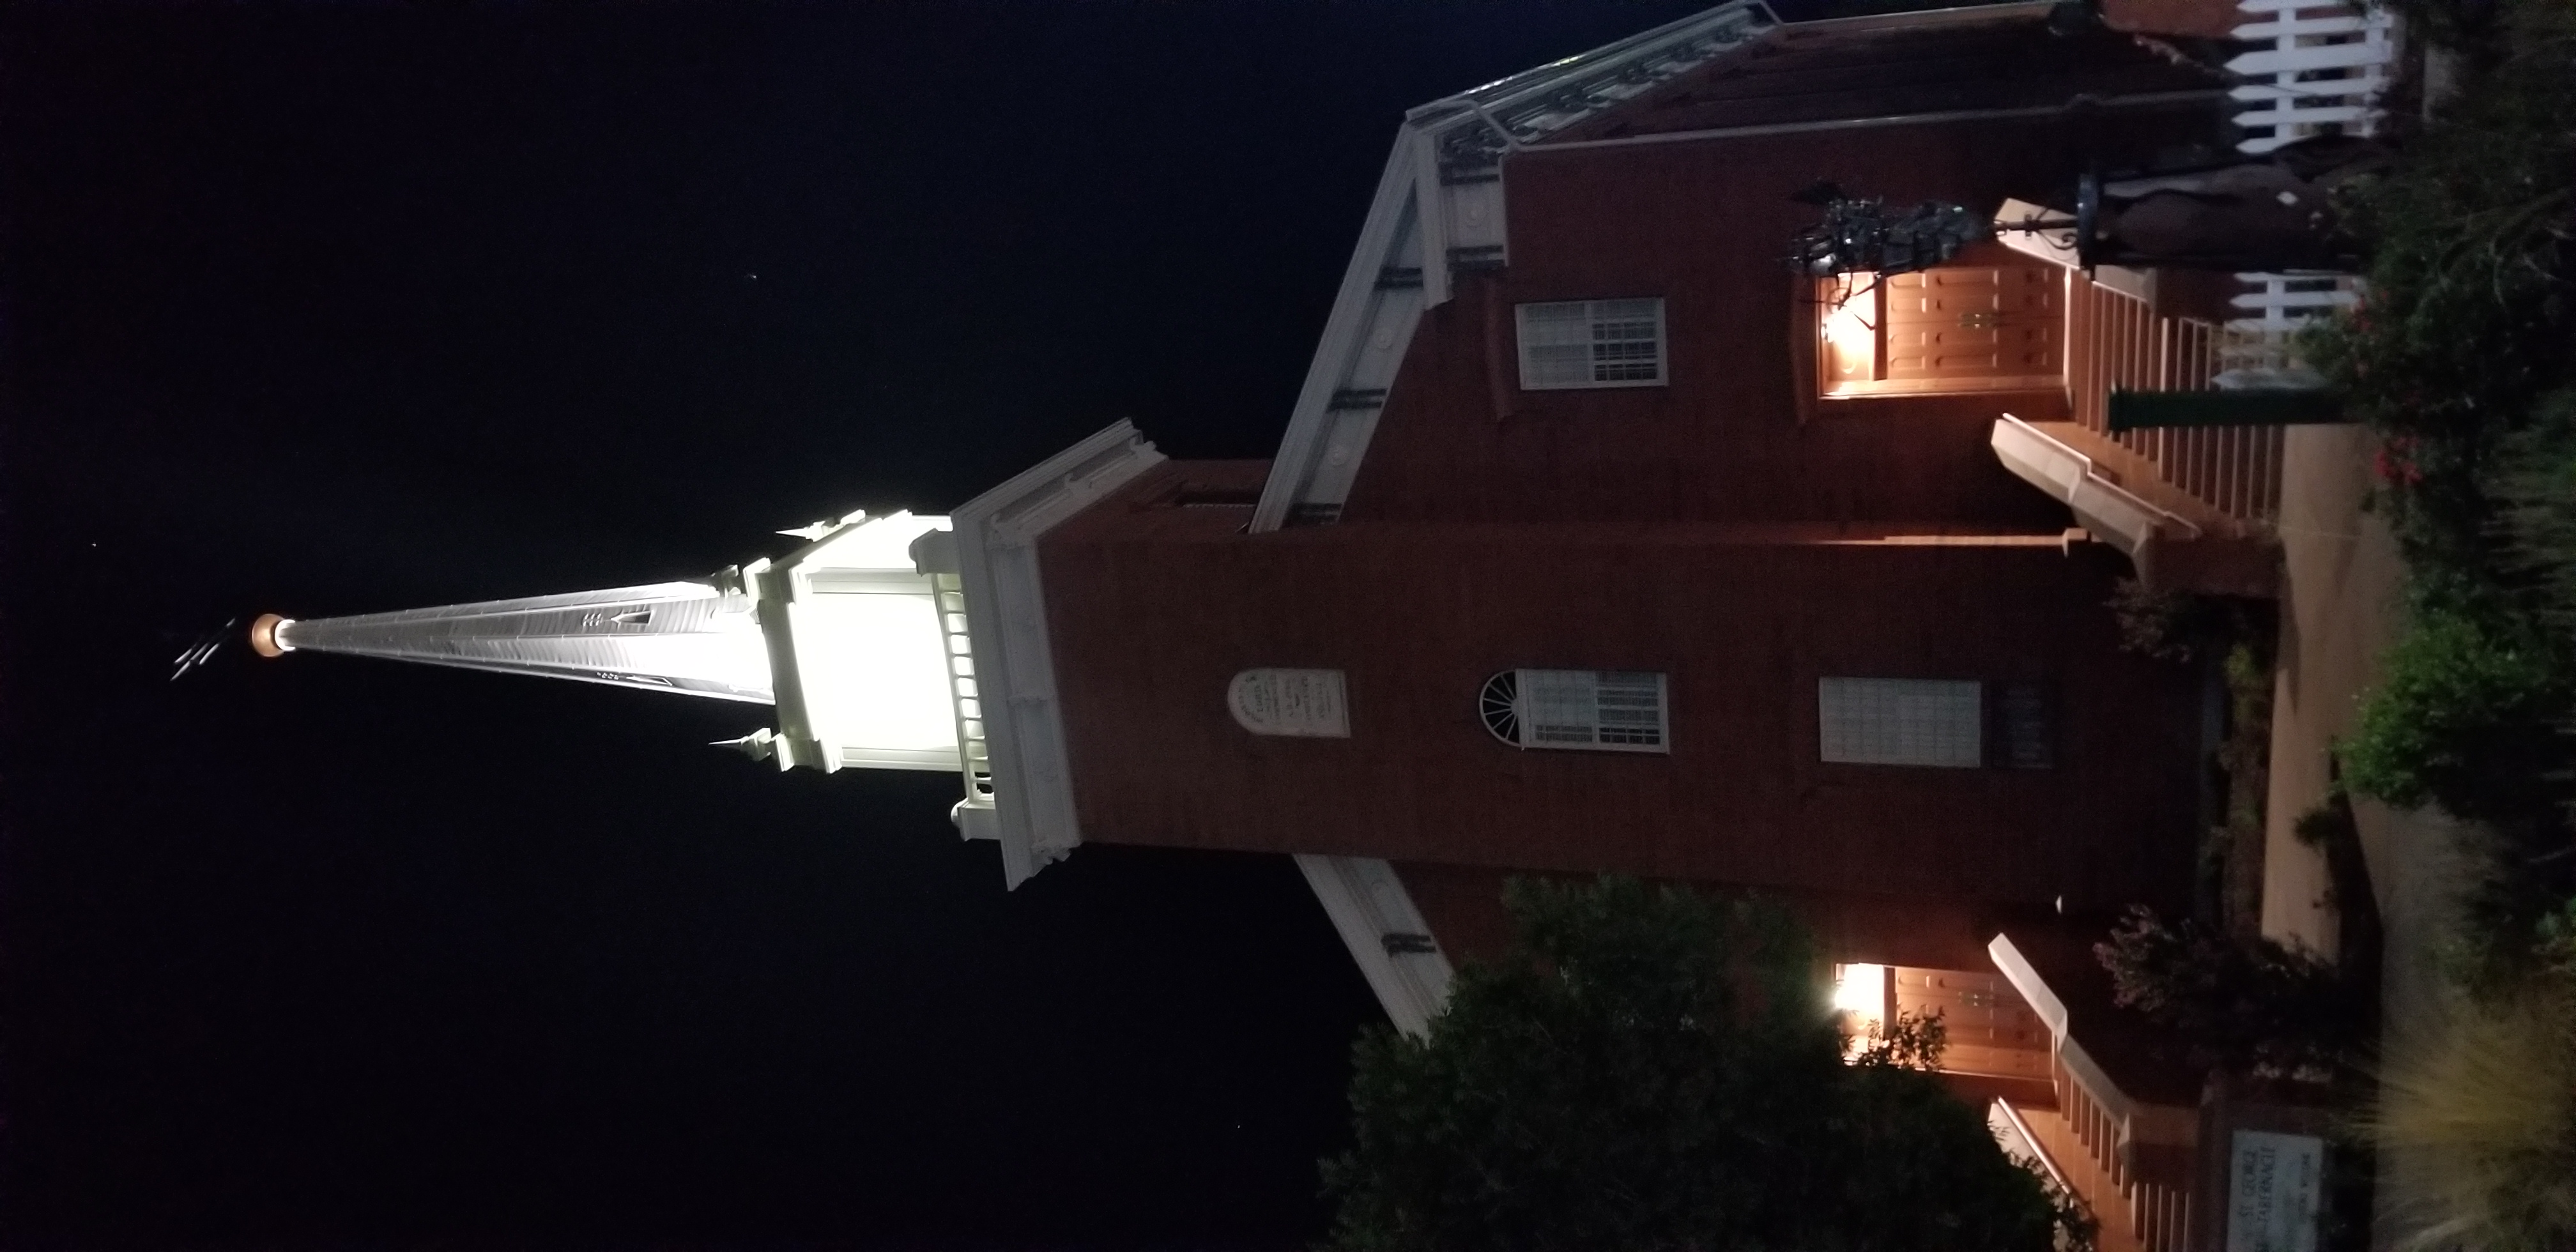 The St. George Tabernacle at night. The tabernacle will be rededicated Saturday, July 28, 2018, following a two-year renovation. Photo taken July 22, 2018.